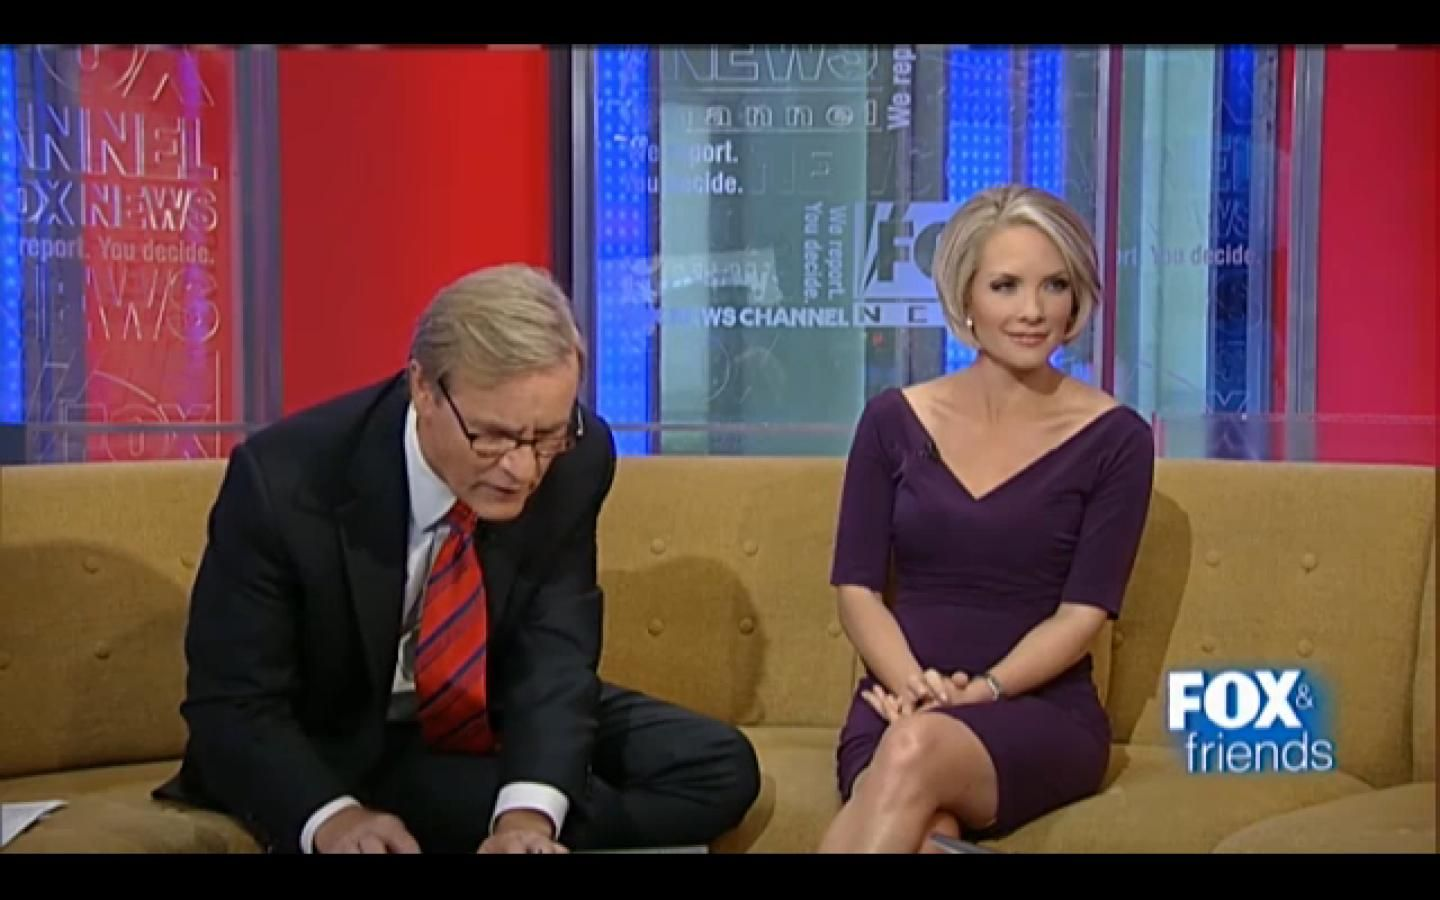 Dana Perino in a Swimsuit | Monday: Dana Perino caps/pictures/photos